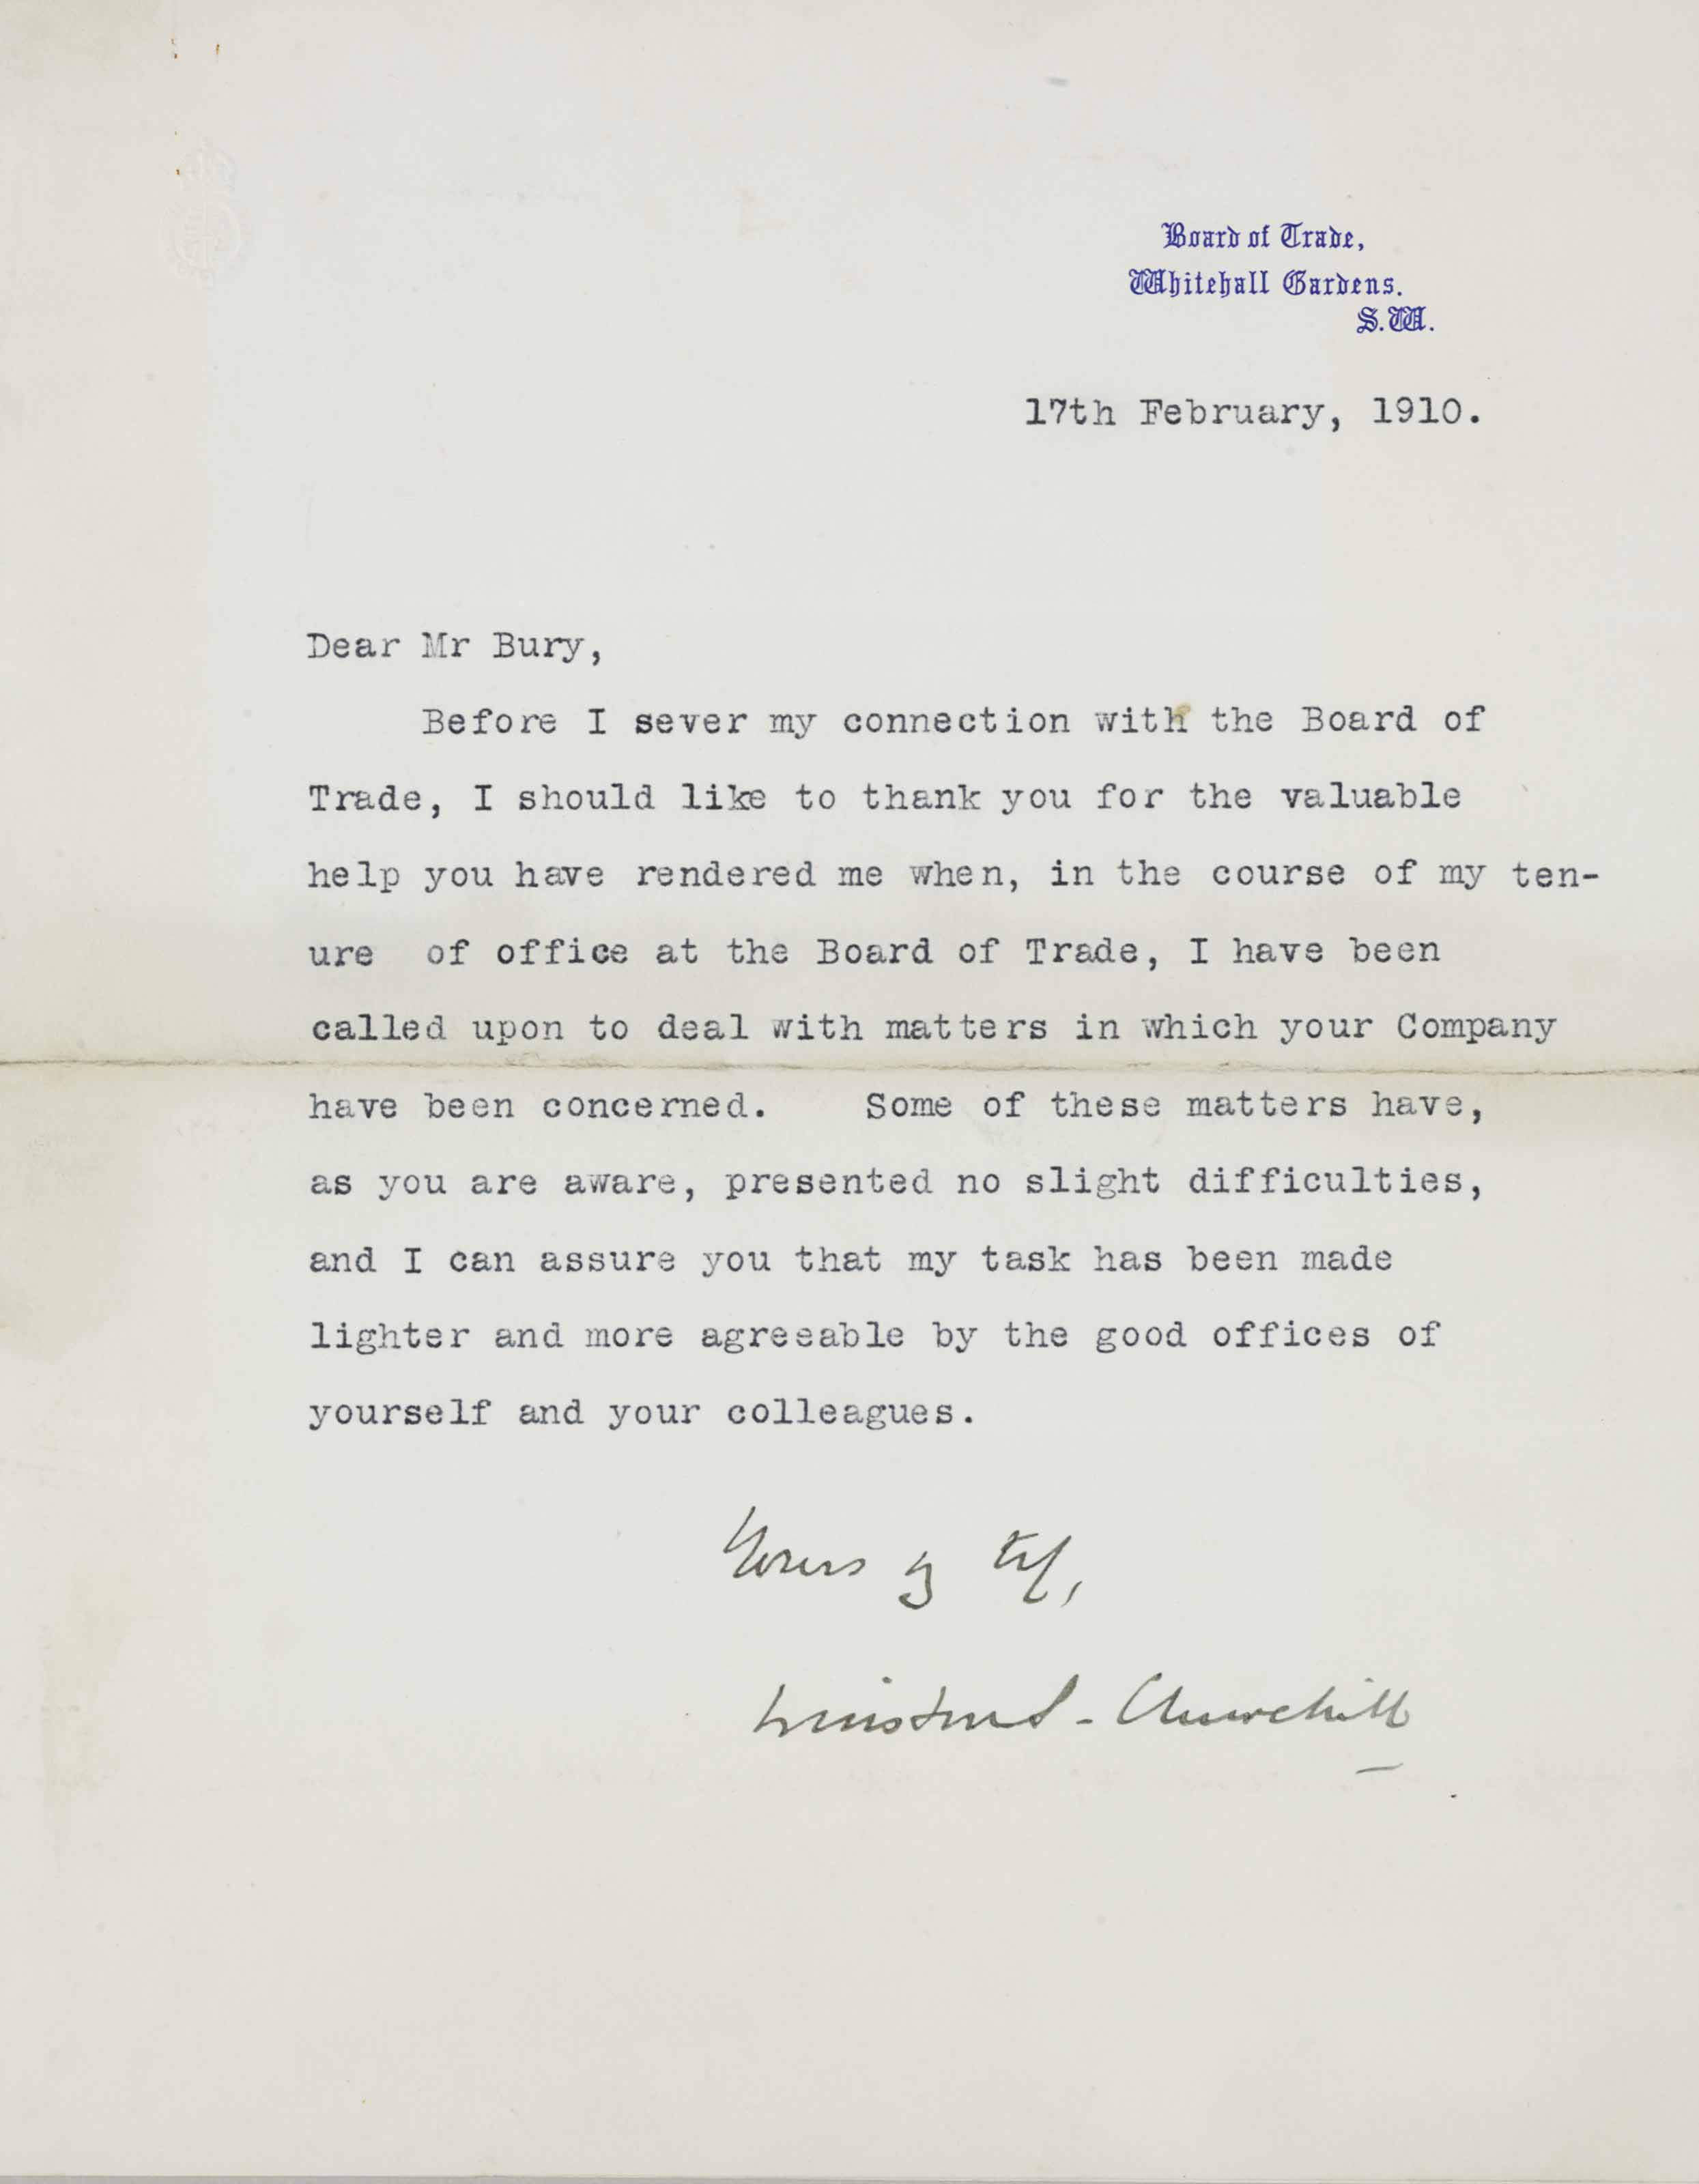 """CHURCHILL, Winston S. Typed letter signed (""""Winston S. Churchill"""") to Mr. Bury, London, 17 February 1910. 1 page, 4to, Board of Trade stationery."""